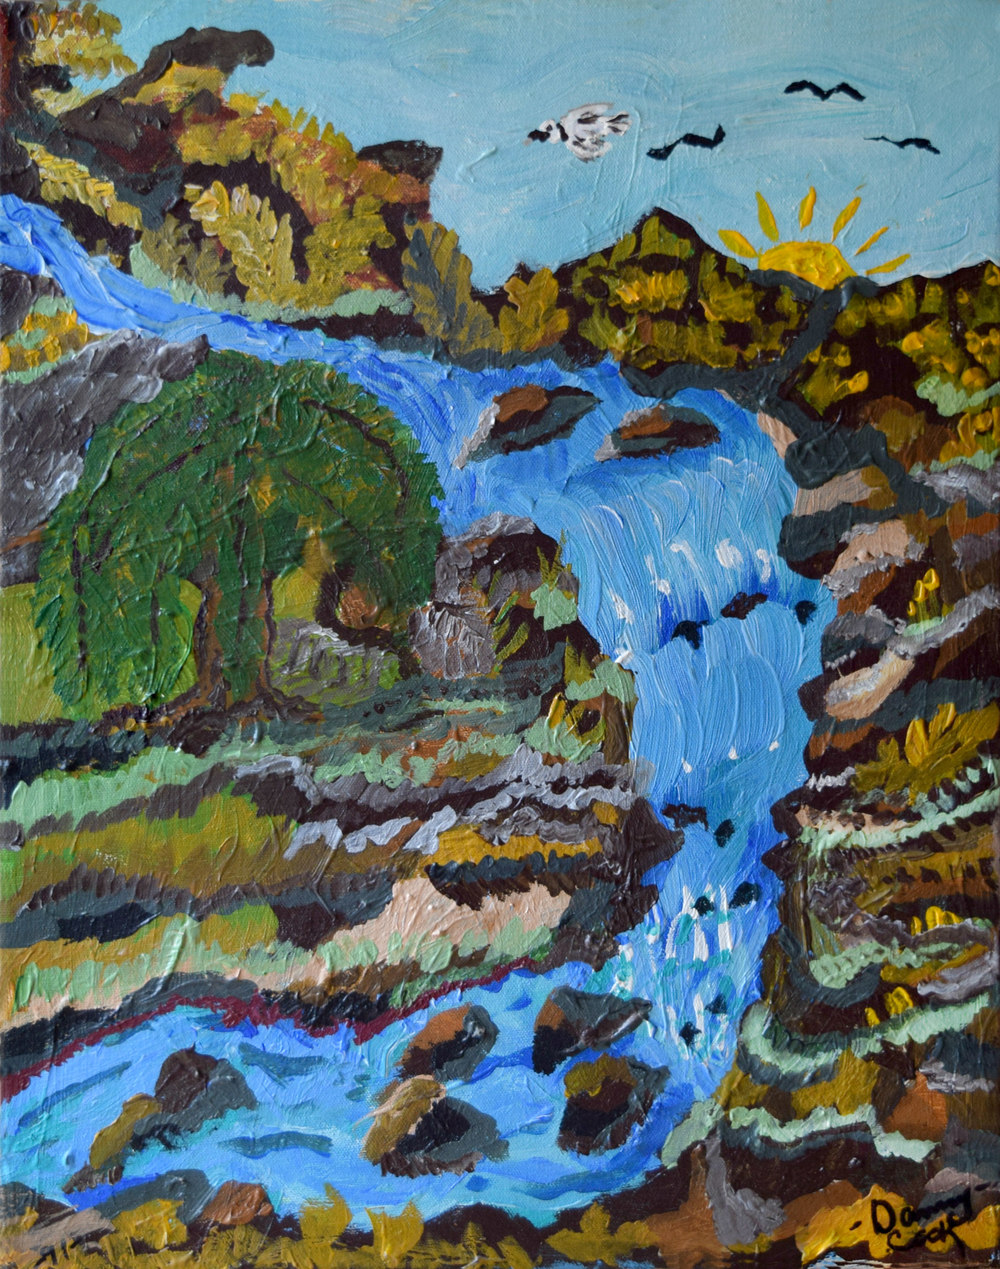 Waterfall Danny Cook Acrylic on Canvas 1x17 size photo print $35